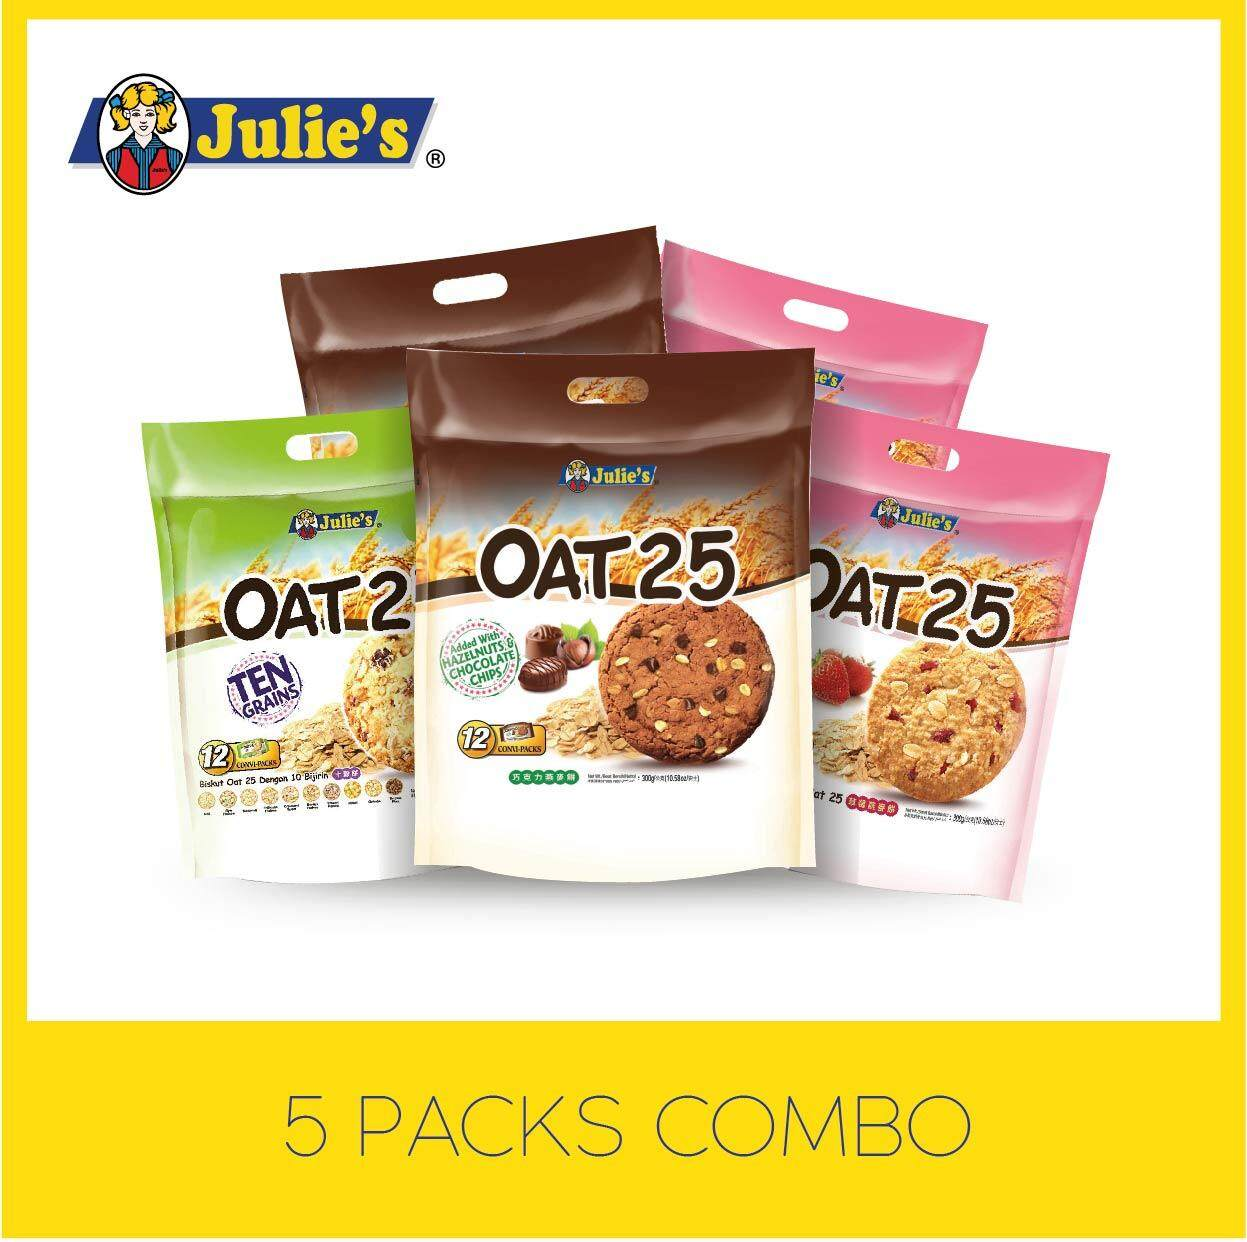 Julie's Oat25 Healthy Breakfast Deal